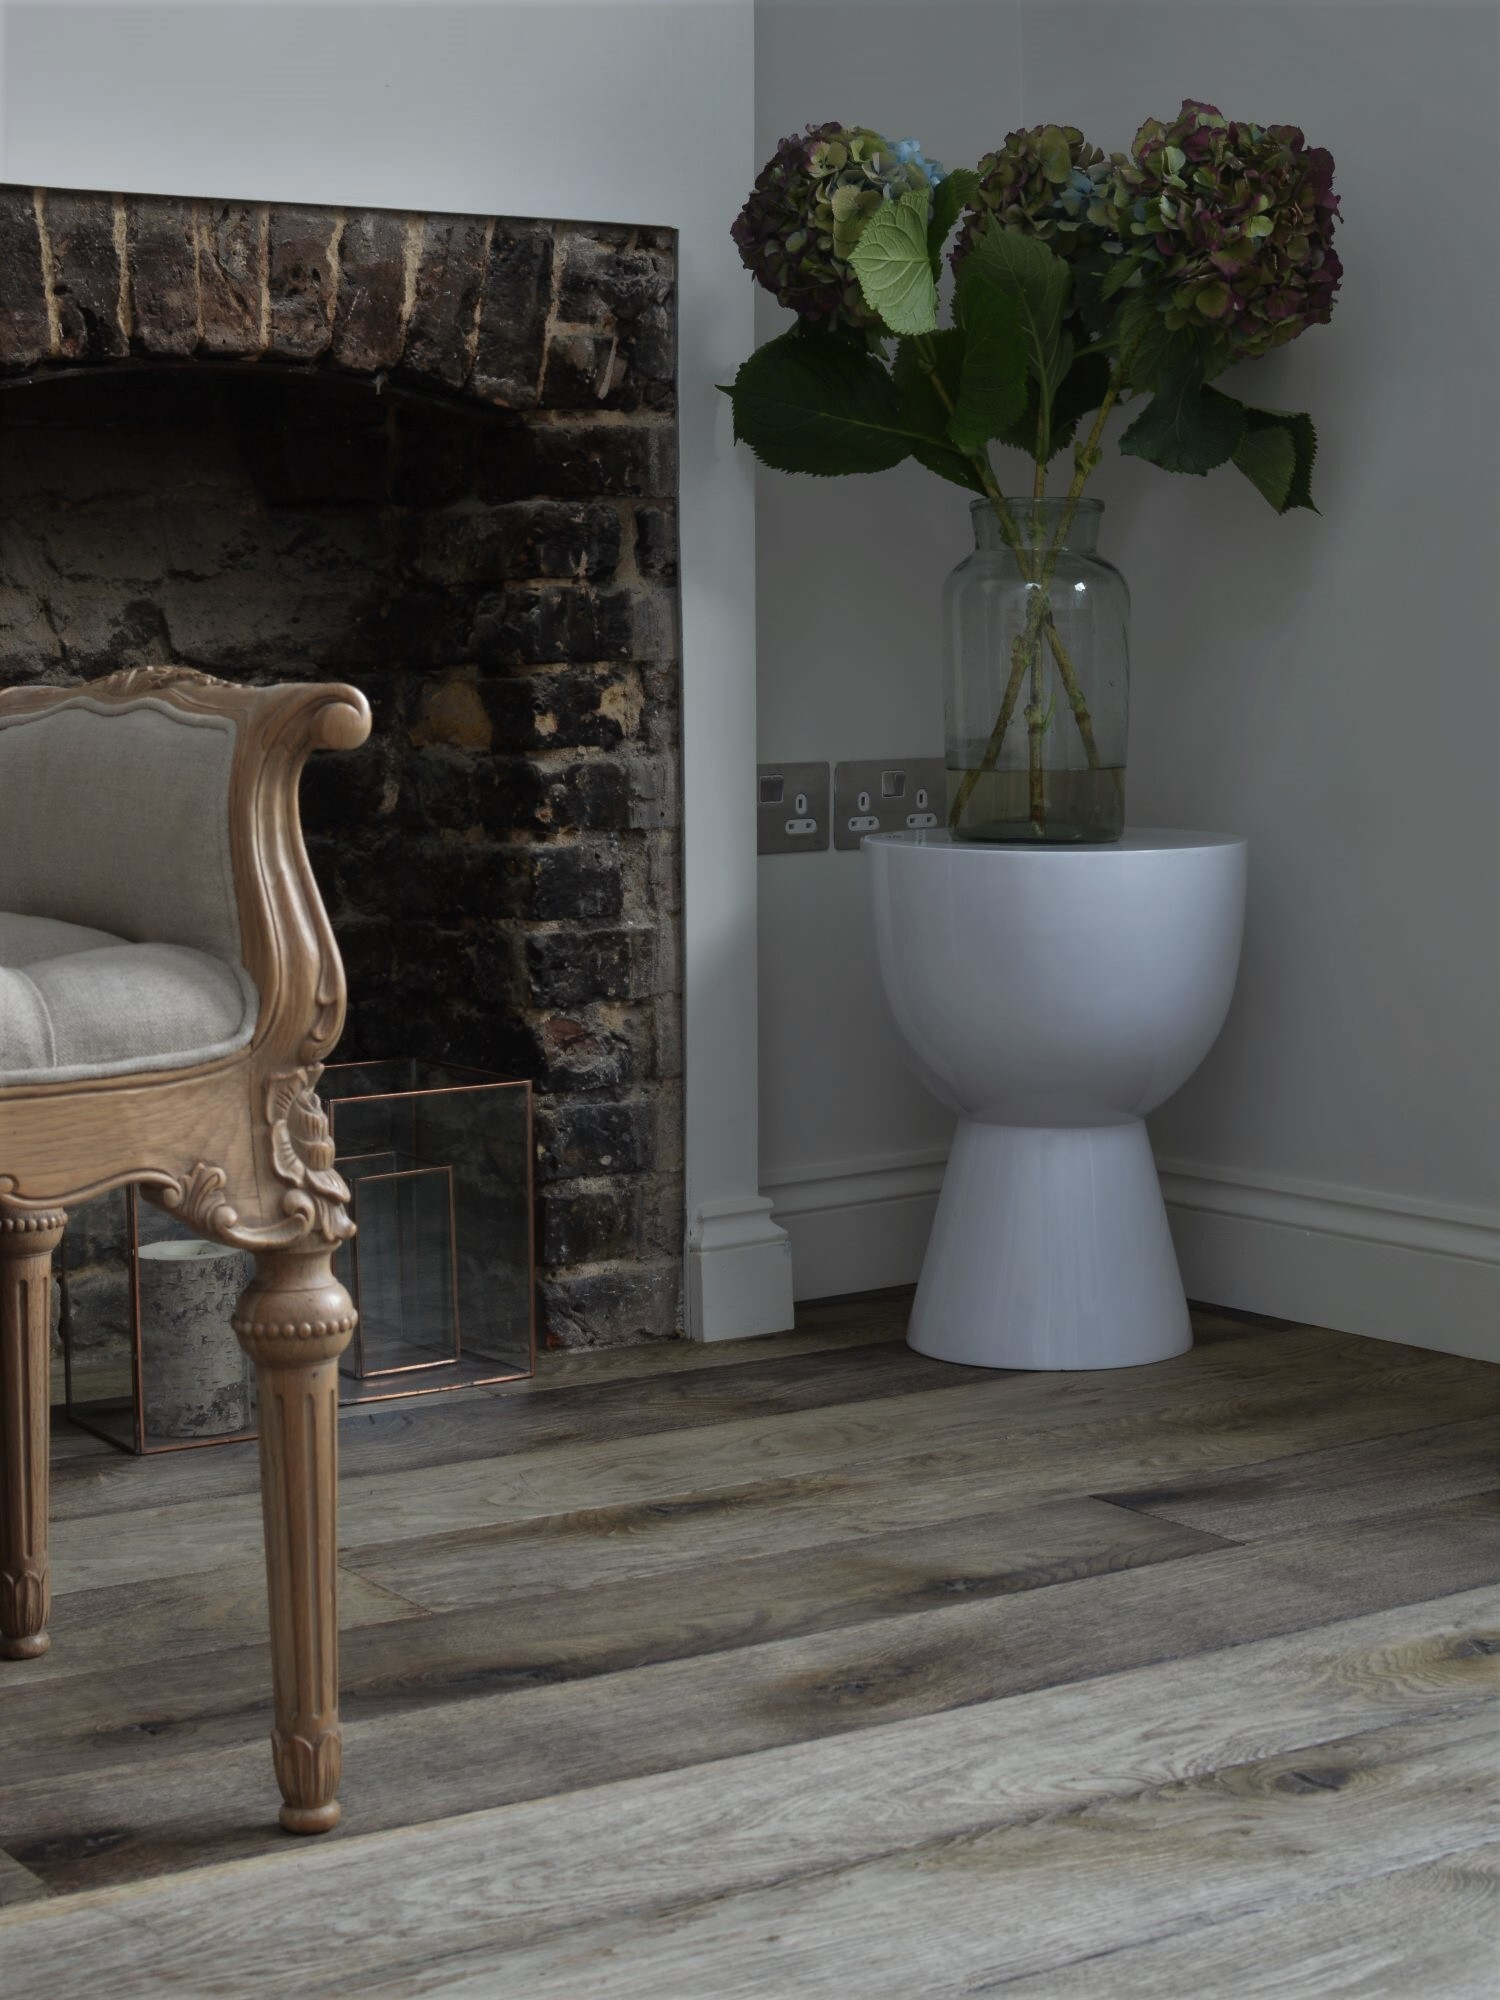 Oak Stromboli with fireplaceand white stool in the corner